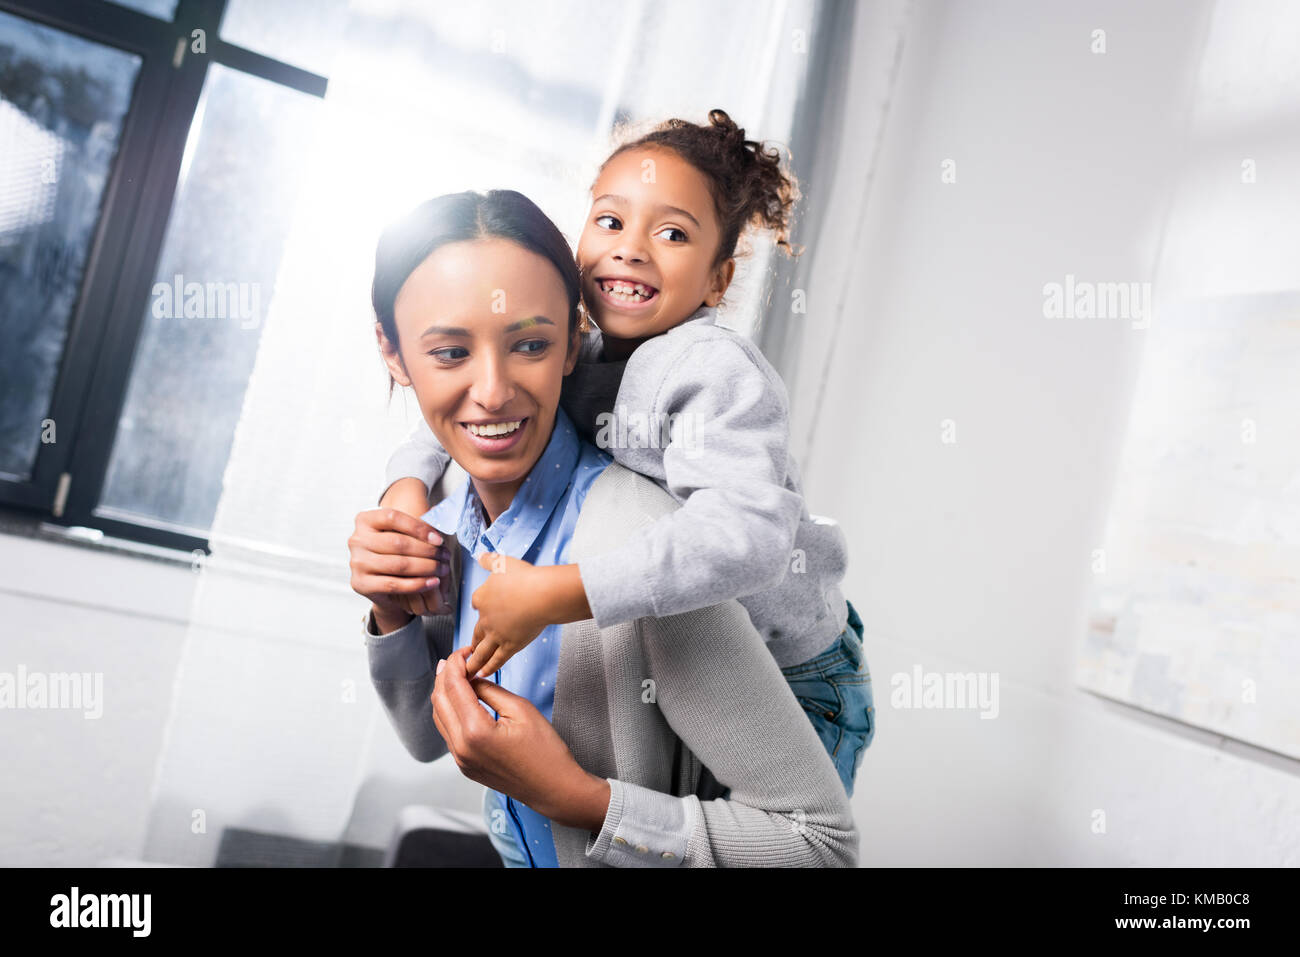 mother piggybacking her daughter - Stock Image